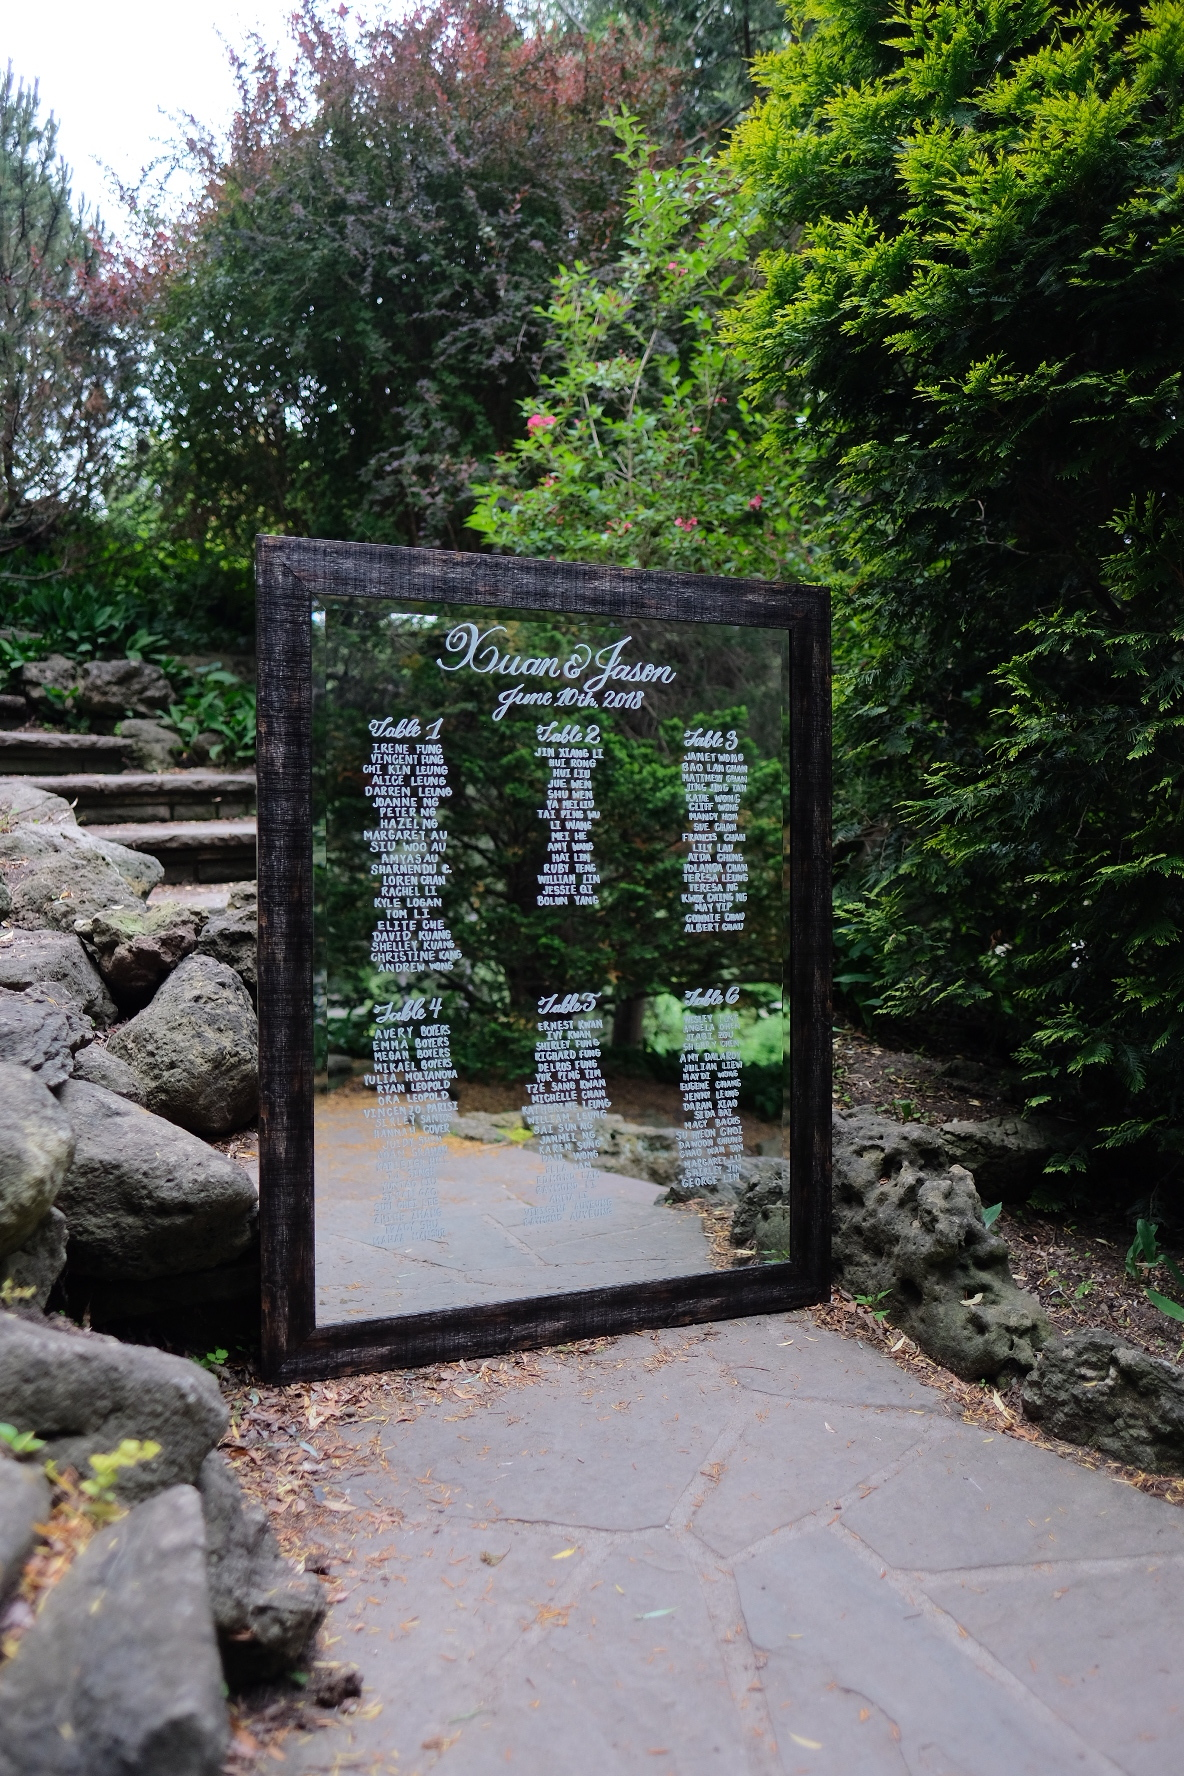 Client's Mirror Seating Chart at Edwards Garden